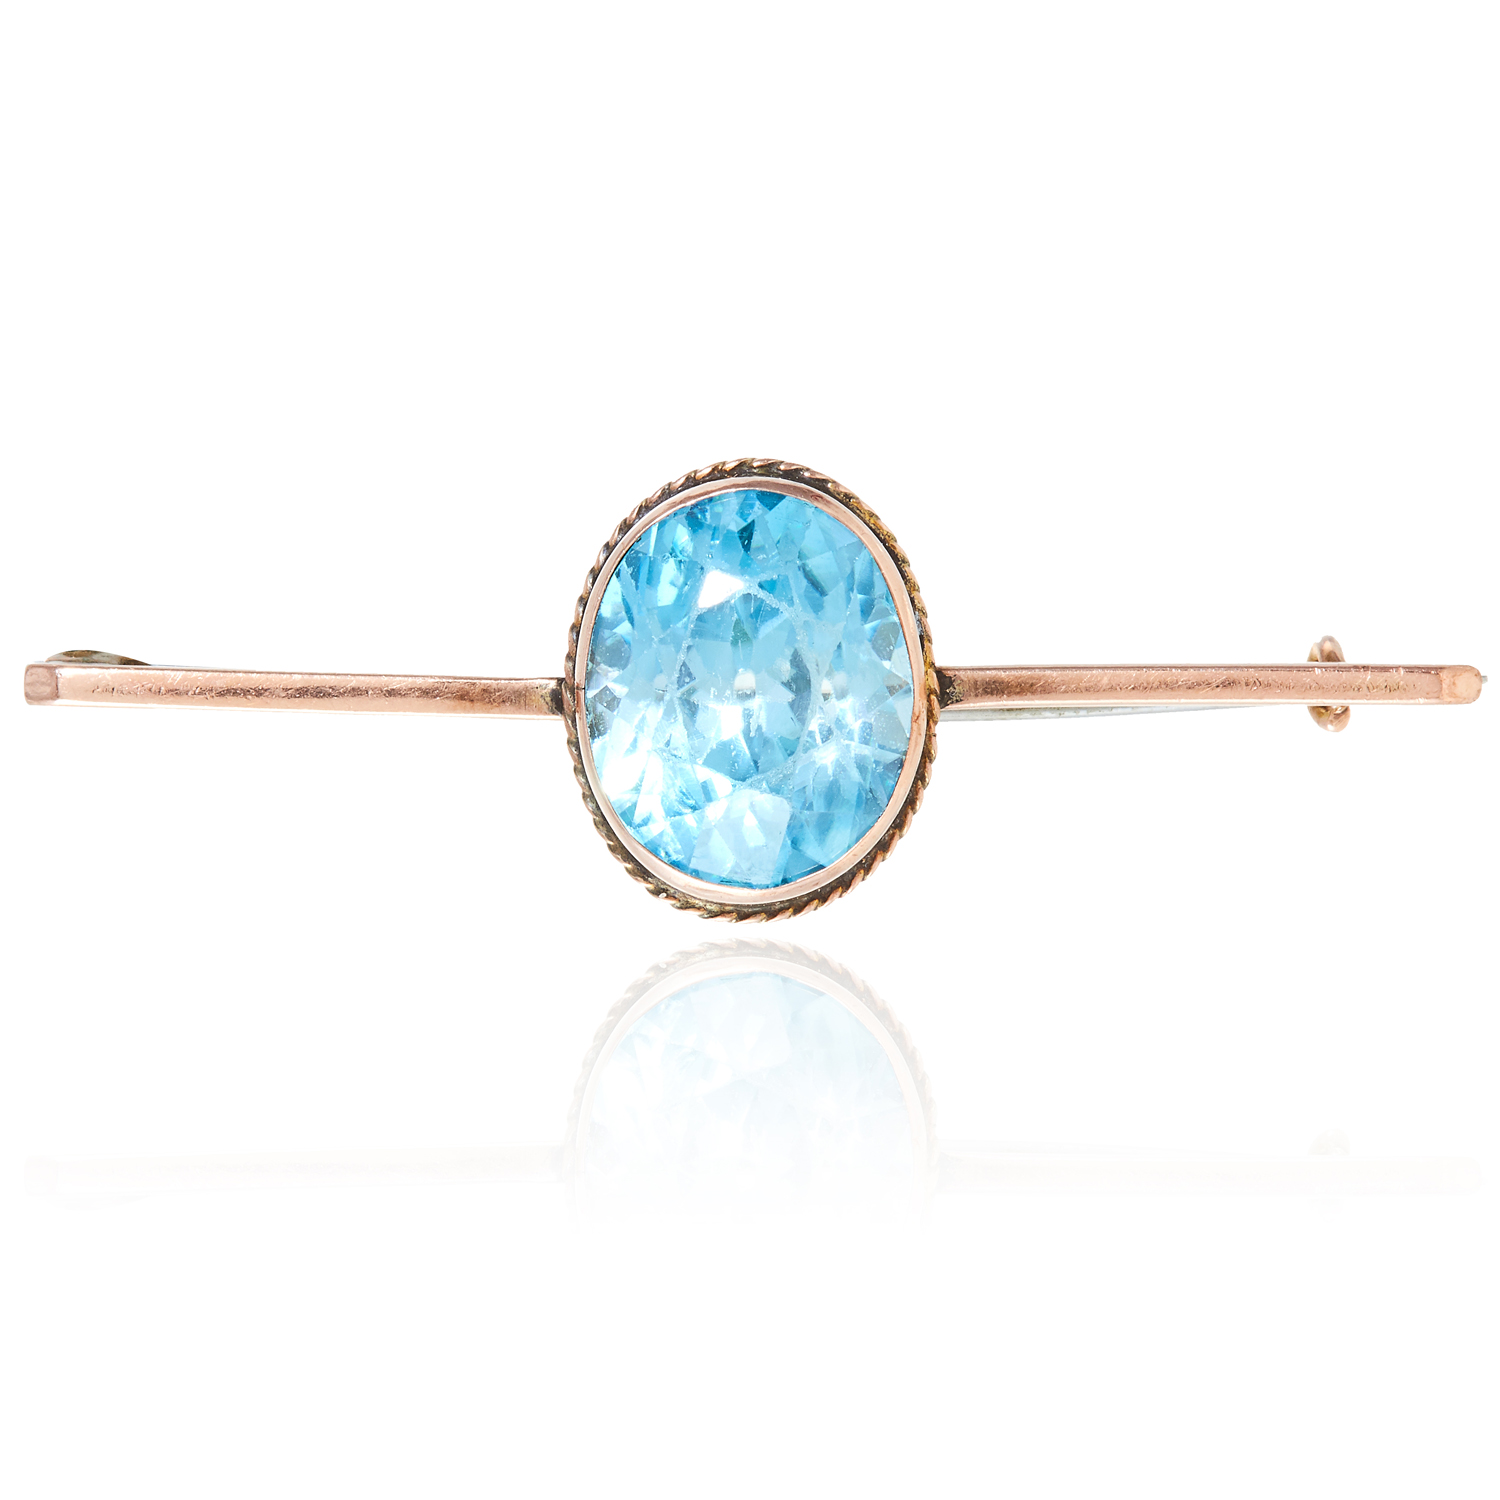 TOPAZ BAR BROOCH set with an oval cut topaz, 5.1cm, 5.0g.